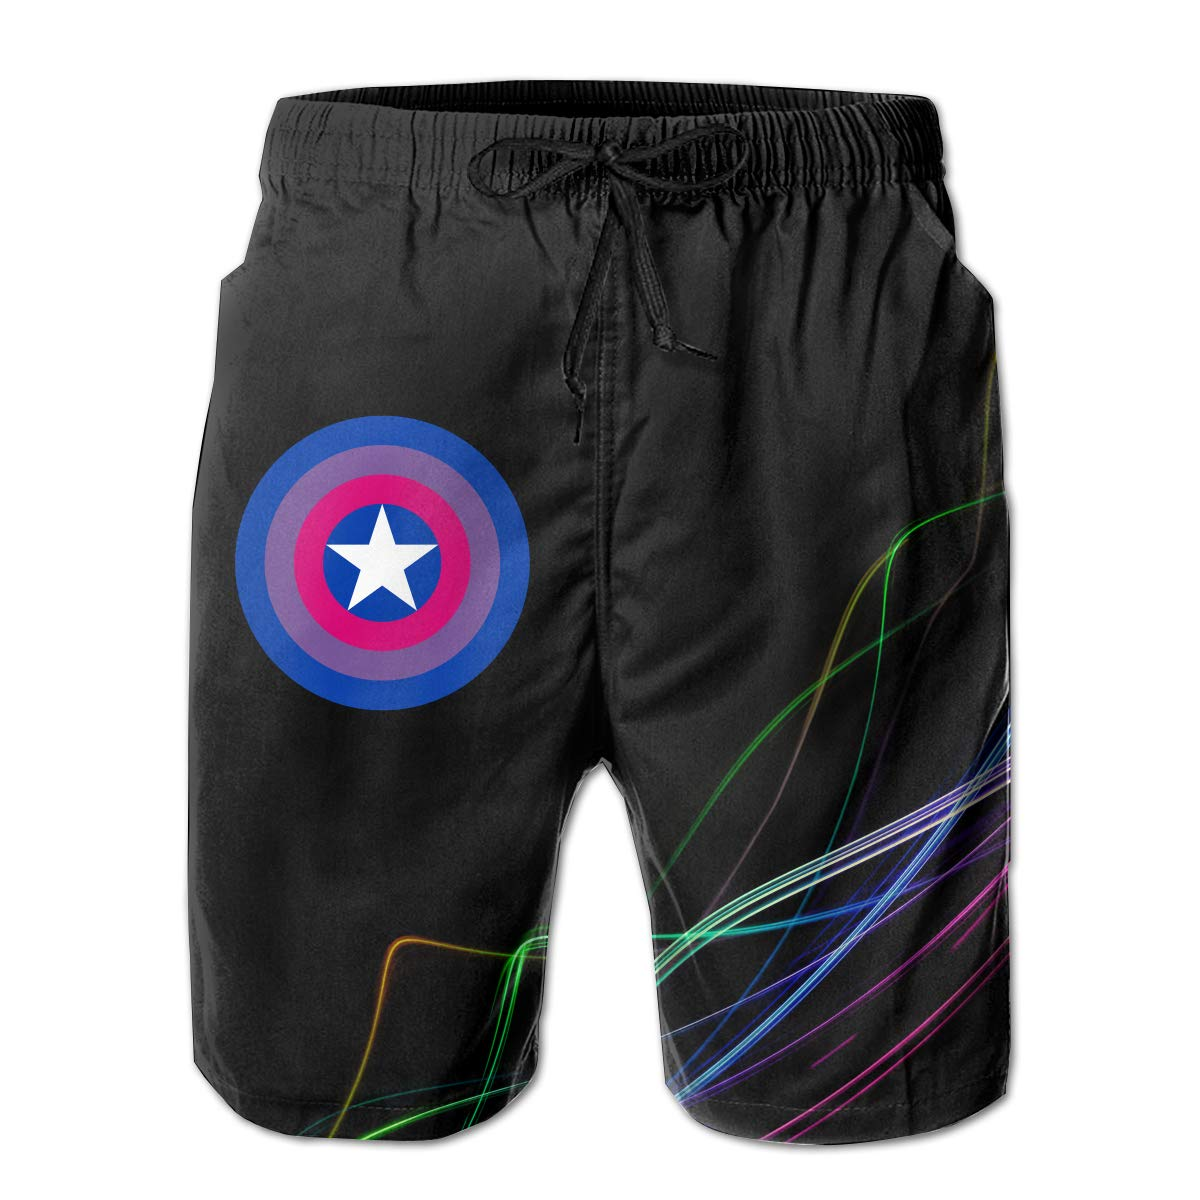 STLYESHORTS Bisexual Pride Captain Shield Mens Board Shorts Swim Trunks Beachwear Relaxed-Fit Beach Trunks